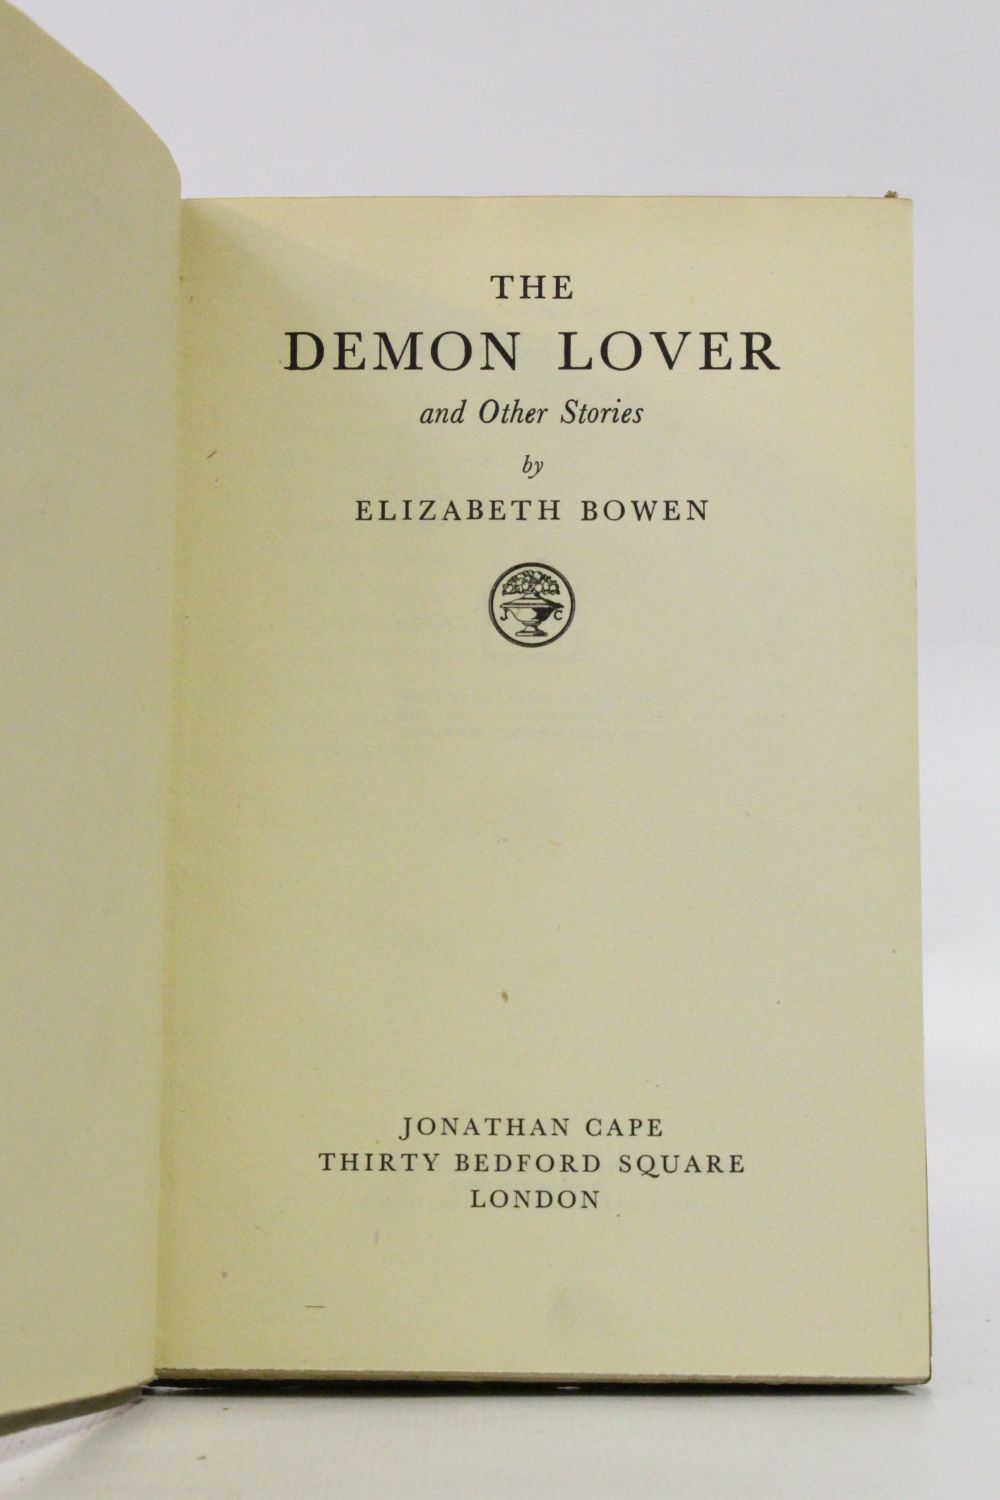 the supernatural story of elizabeth bowens the demon lover Modern ireland in 100 artworks: 1945 - the demon lover and other stories, by elizabeth bowen the writer used her unique imagination to devastating effect in these stories.